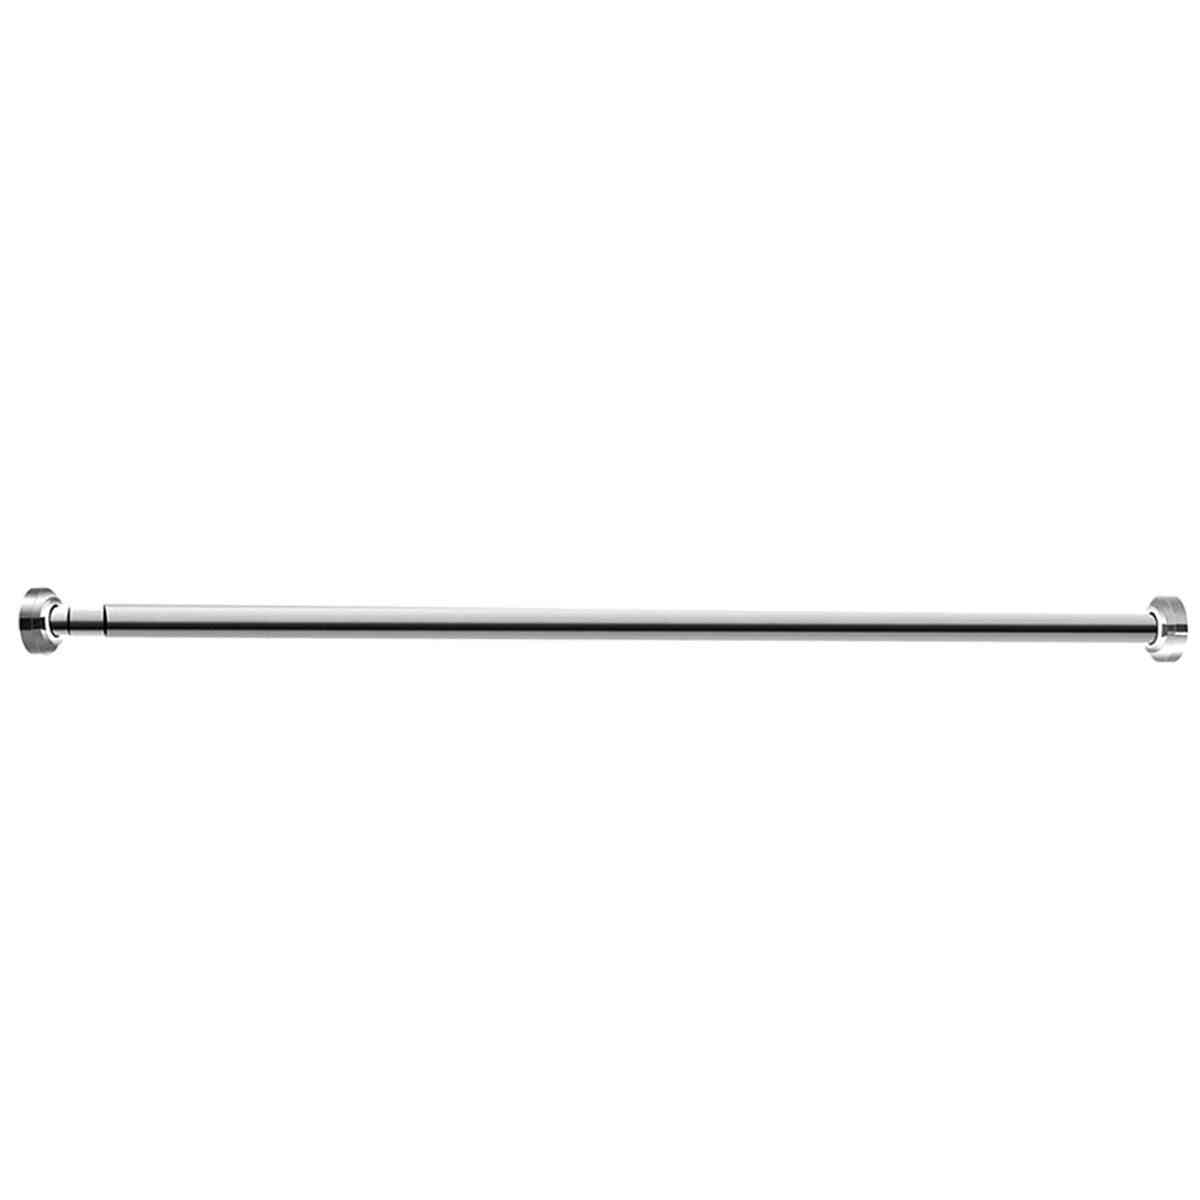 Shower Curtain Pole Adjustable Stainless Steel Spring Tension Rod Rail